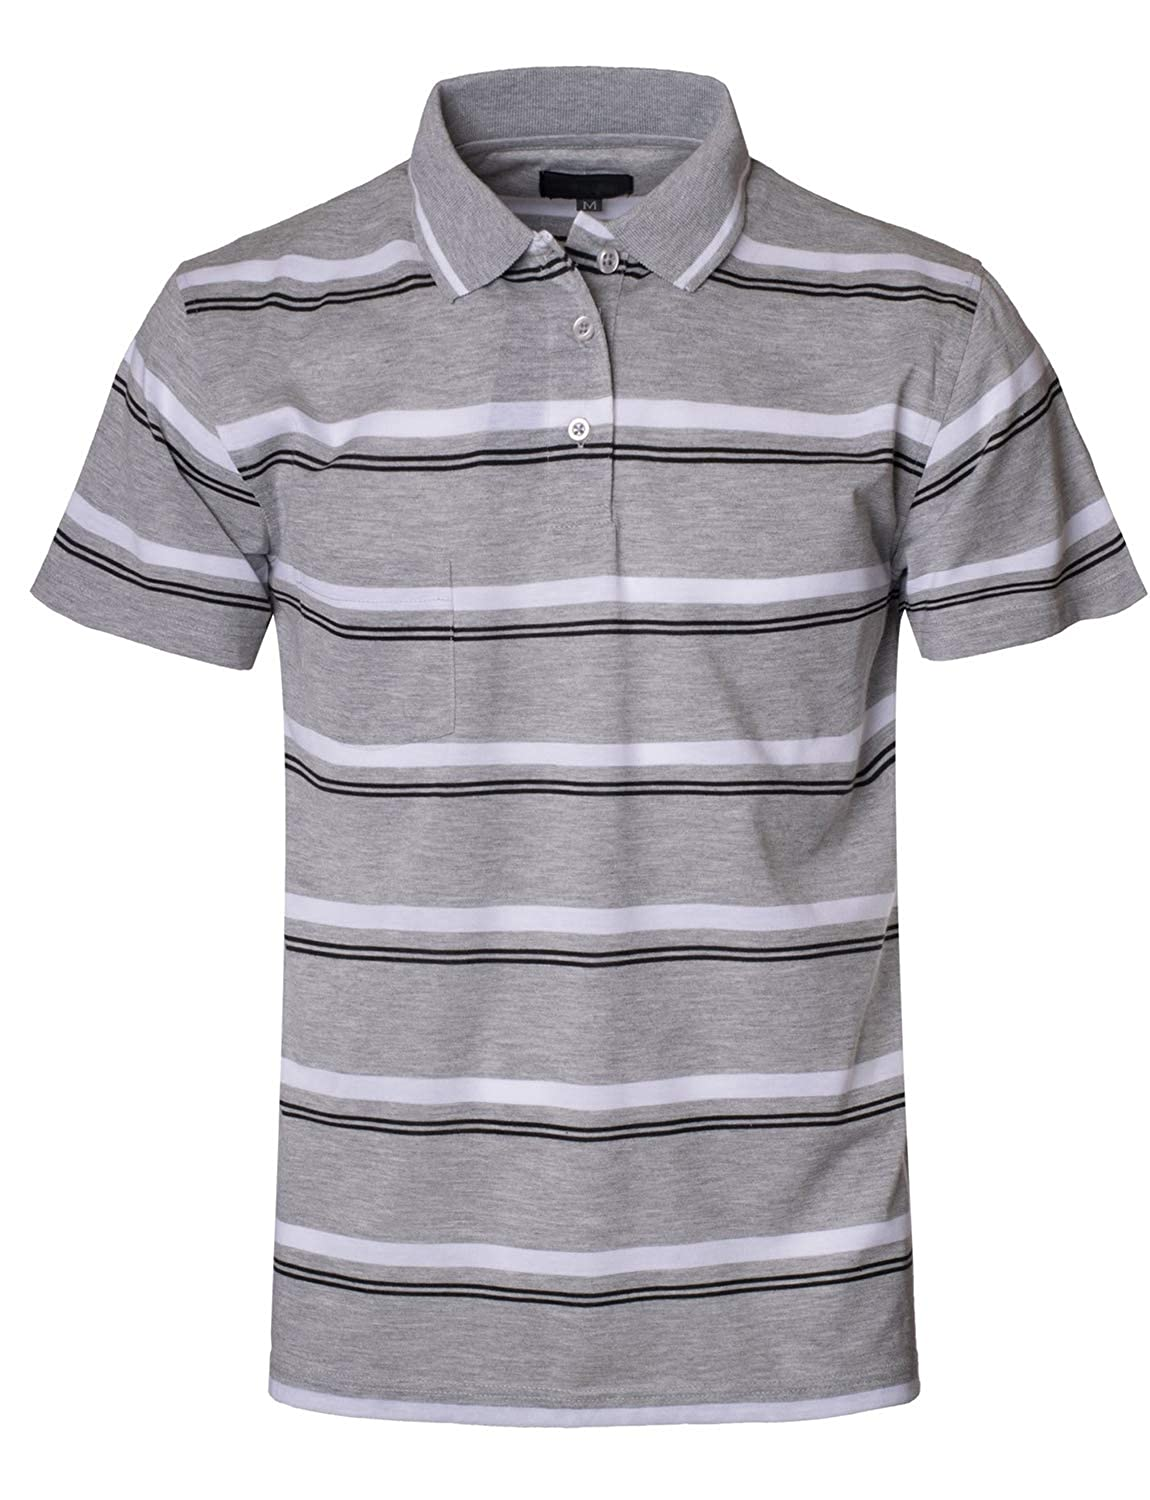 LOVNY Mens Casual Basic Simple Stripe Everyday Polo Shirts J